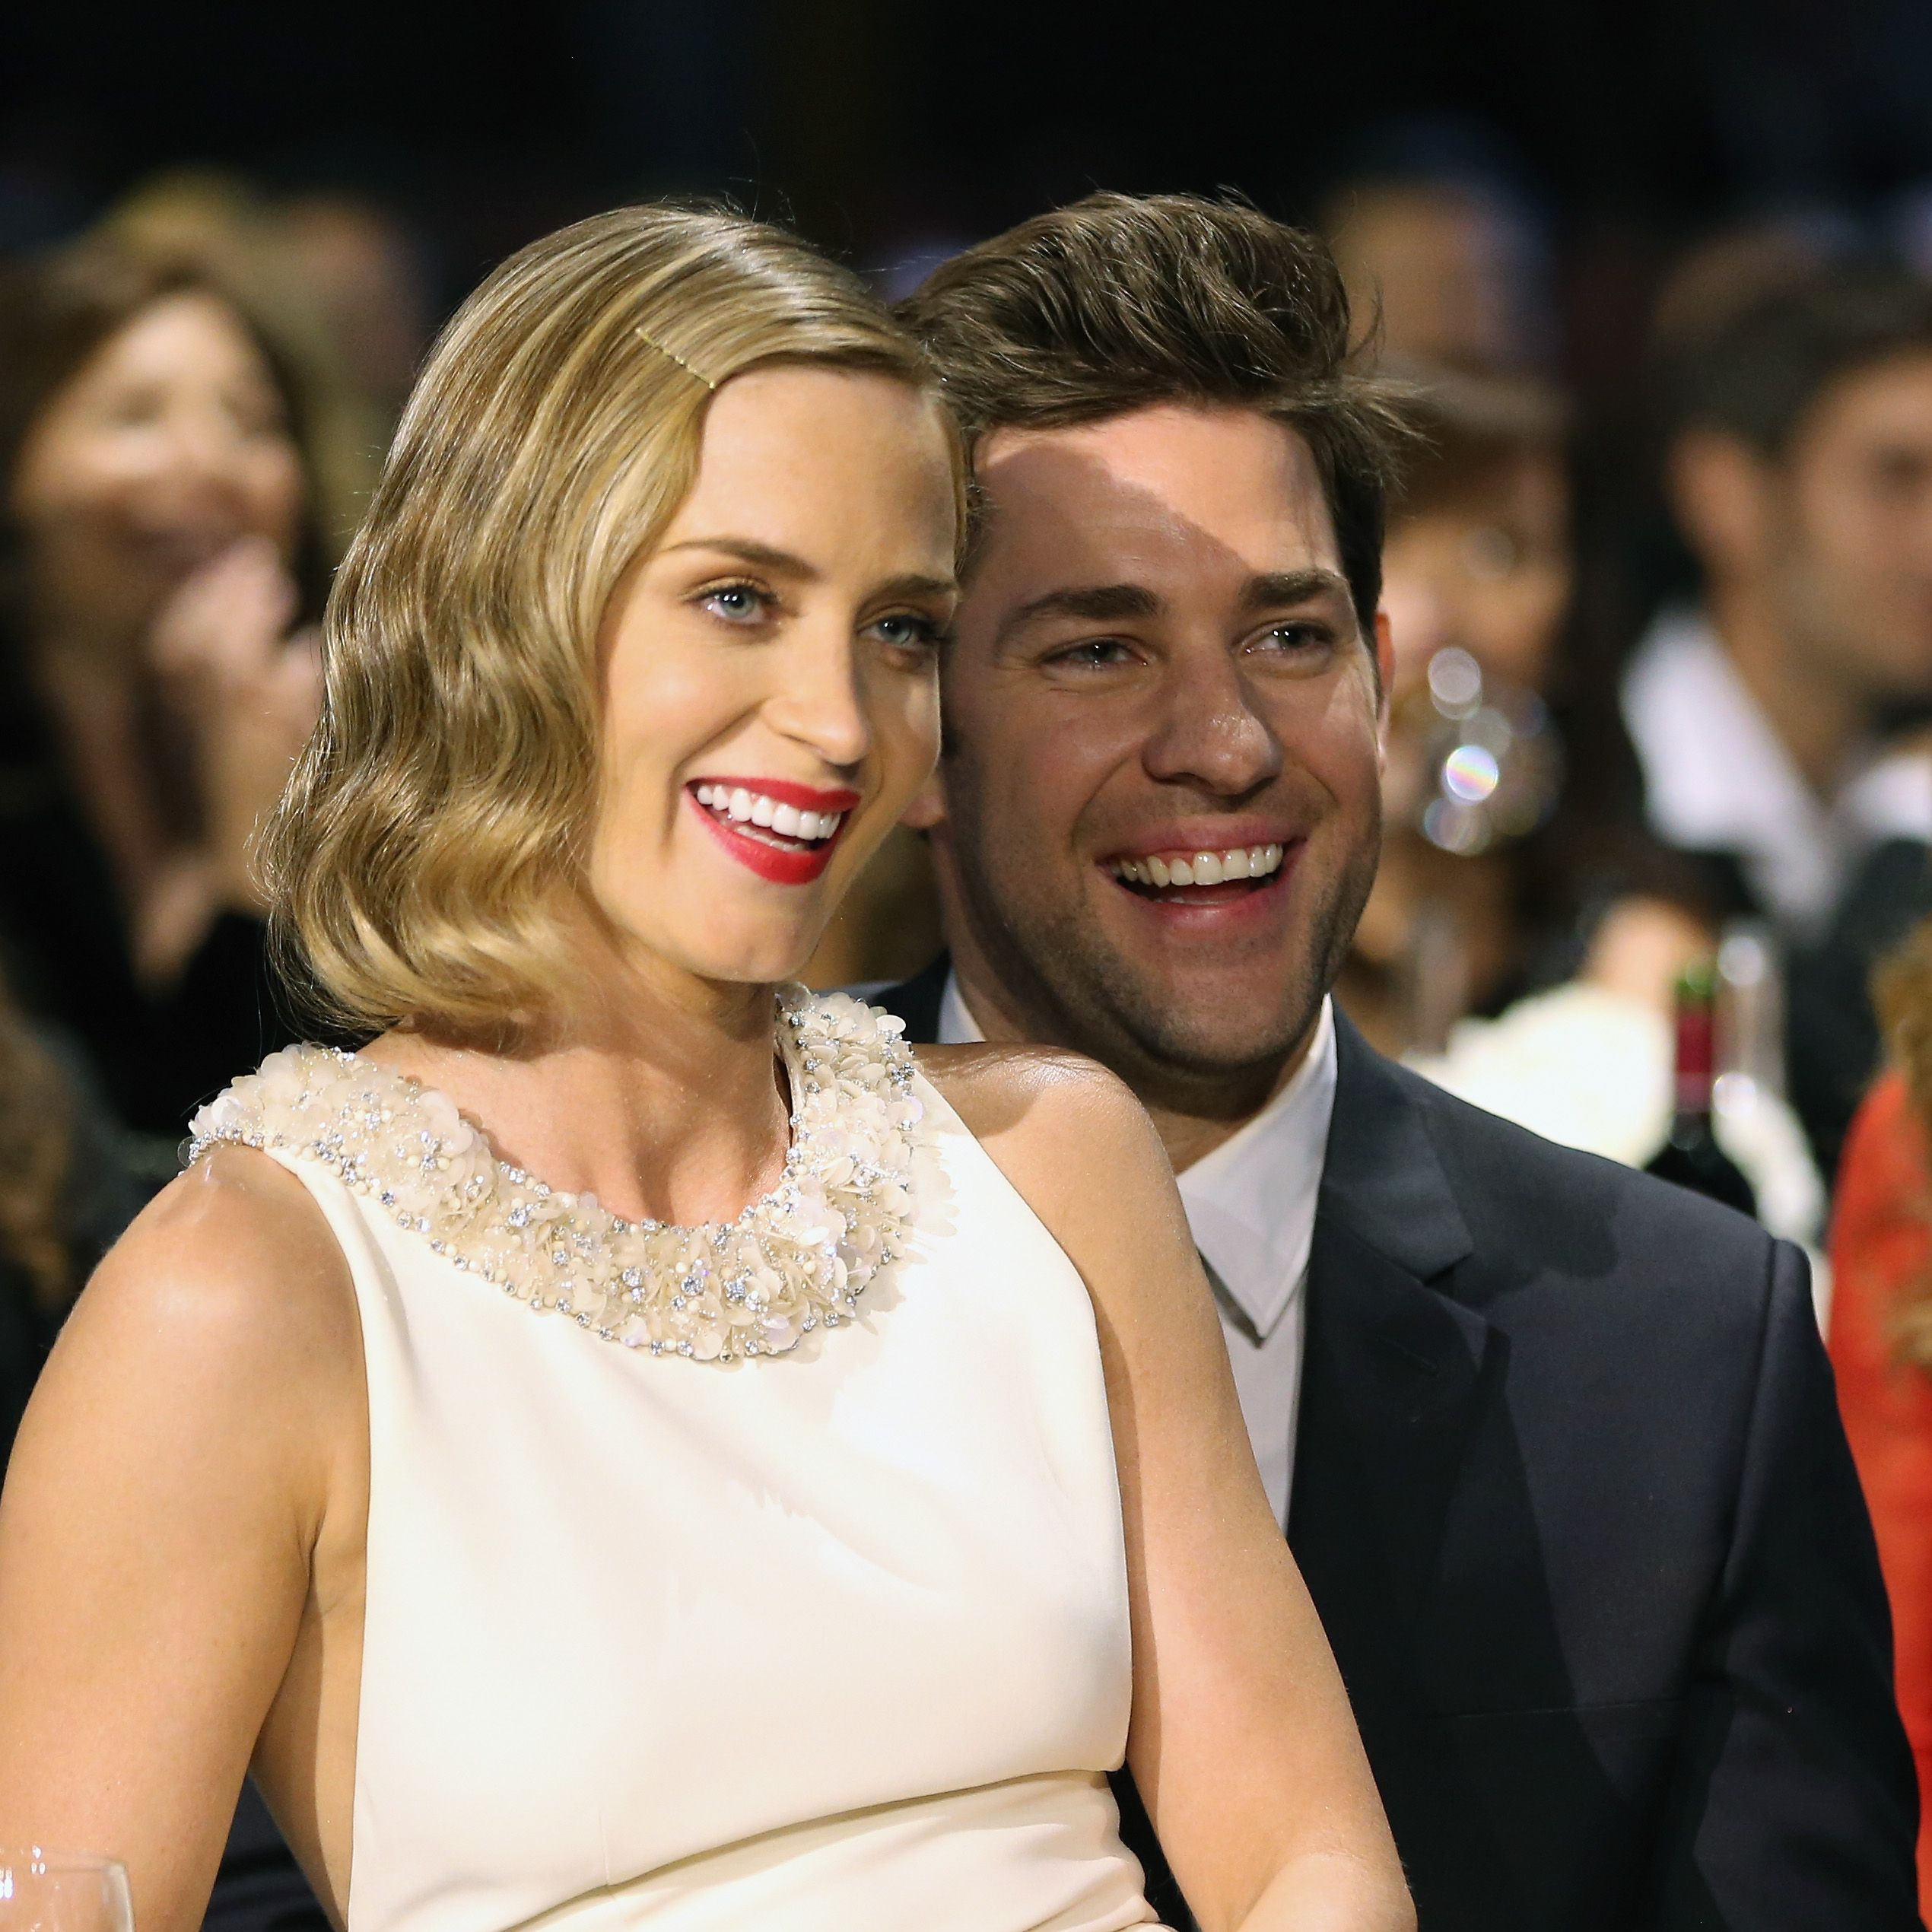 "<p>These two would basically be your favorite funny couple to hang out with. Have you seen the video of them <a href=""19673"">pranking Jimmy Kimmel</a>? The most fun.</p>"